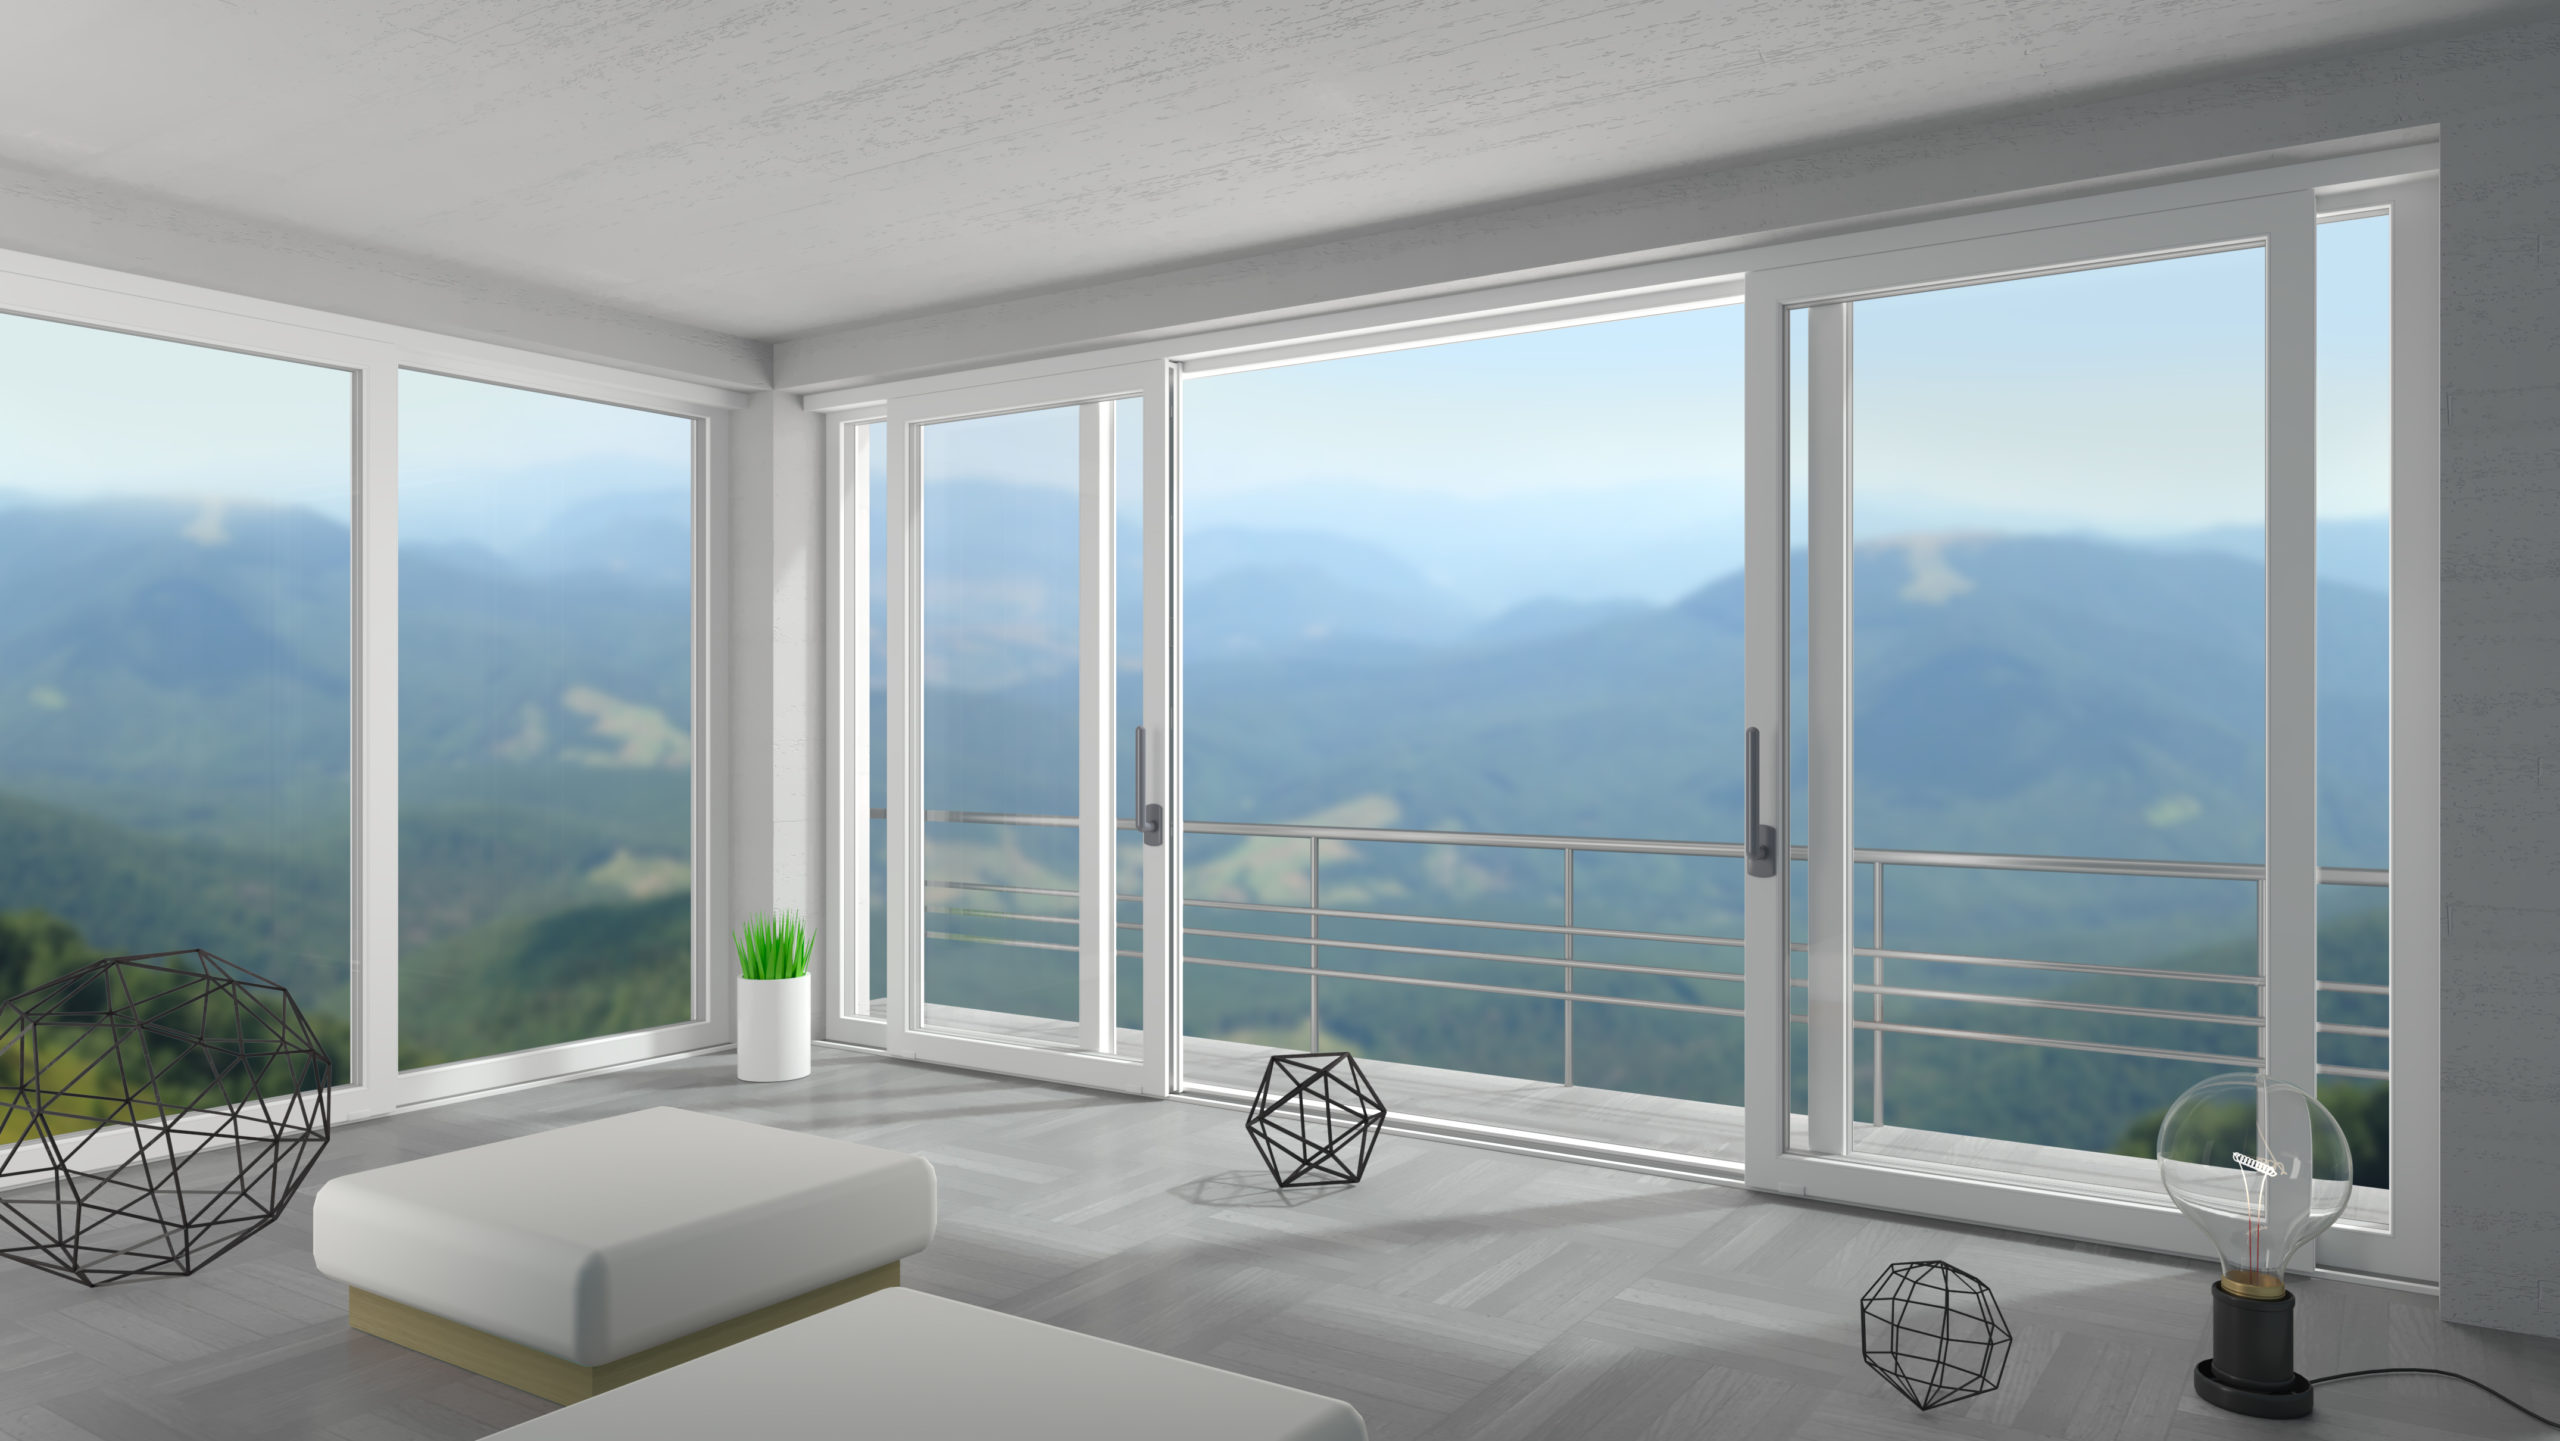 3d illustration. Interior of a modern villa. Panoramic sliding windows and doors. Loft. House or hotel on the sea. Natural landscape. Mountain chalet